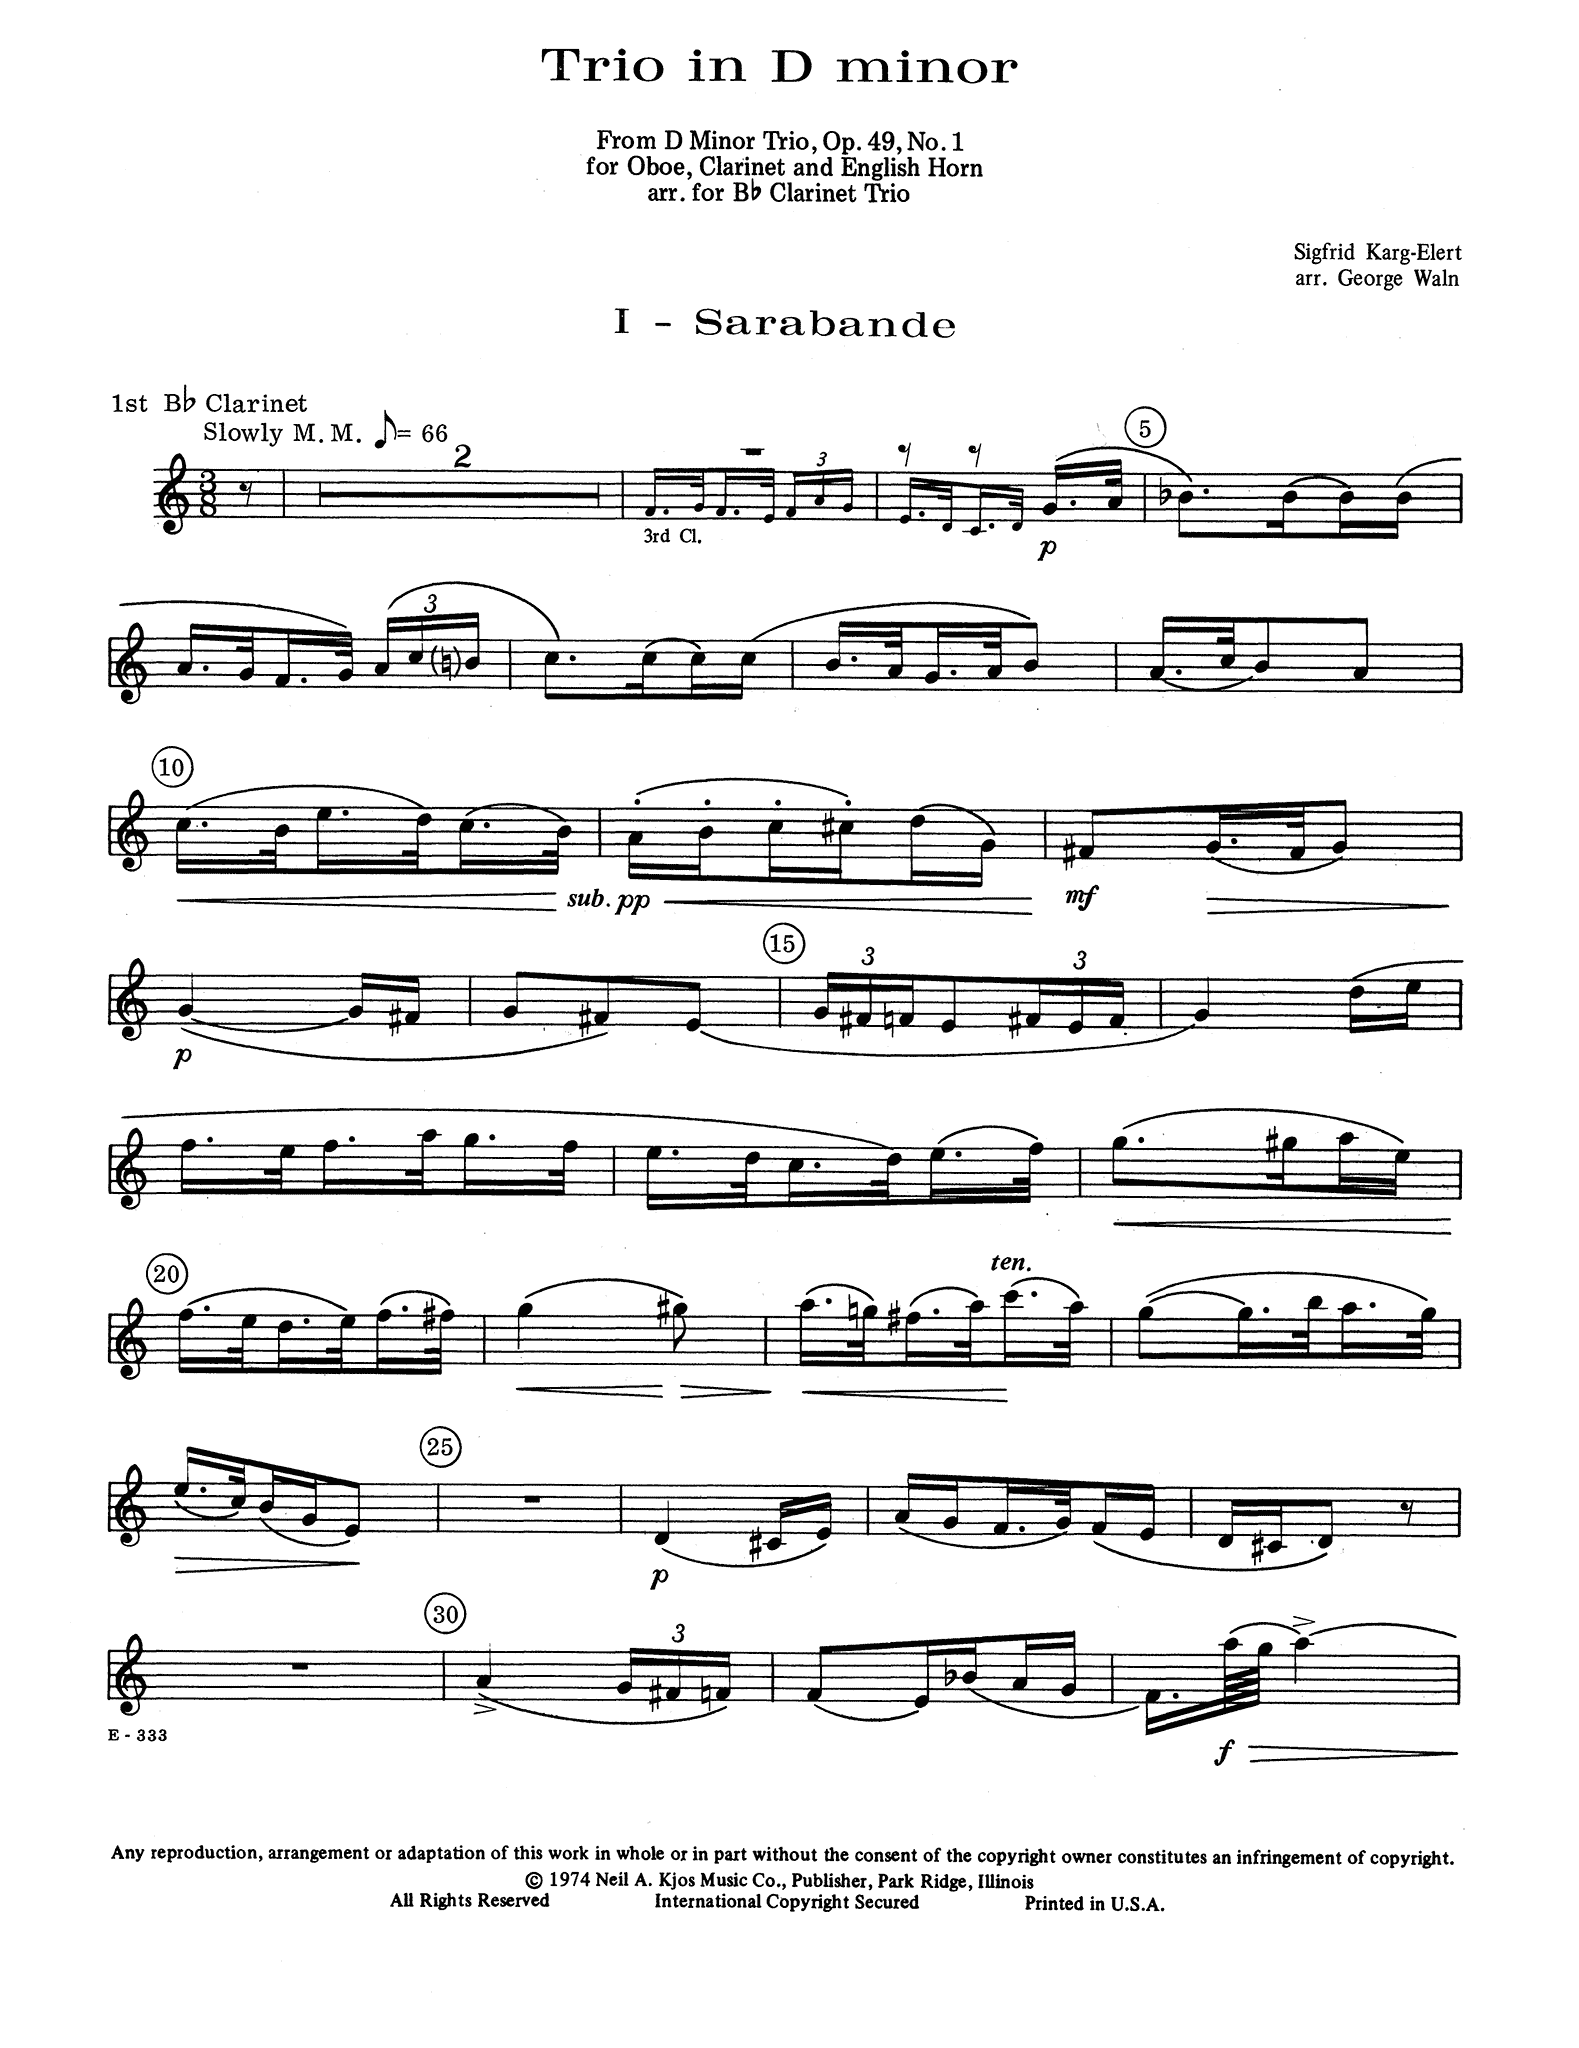 Two Movements from Trio in D Minor, Op. 49 No. 1 First Clarinet part